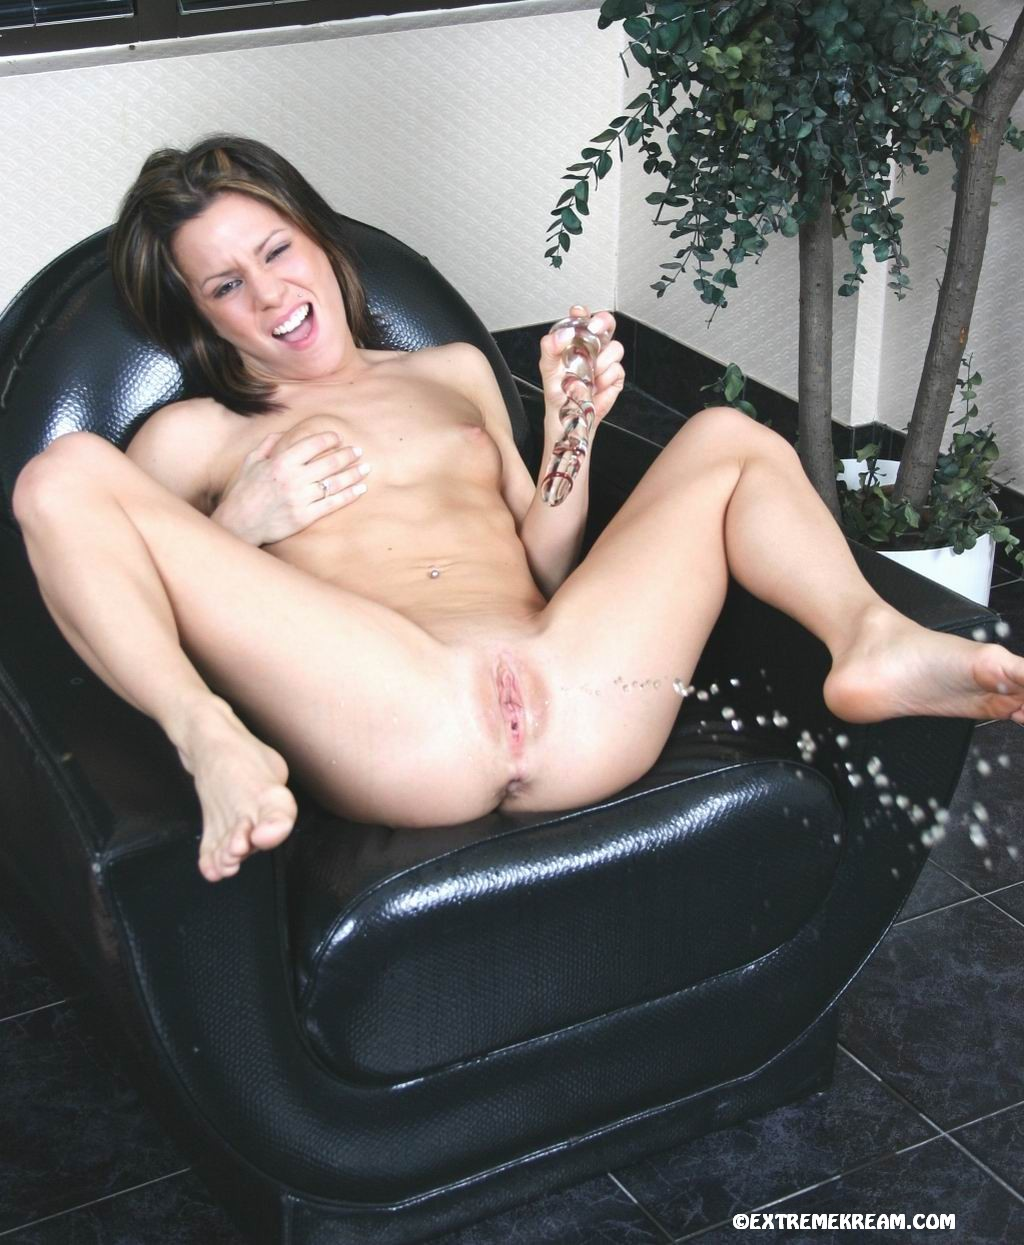 extreme kream porn Extreme Kream gets her ass finger fucked by two lesbian sluts  Squirting  pornstar legend Extreme Kream, will never tire of deep hard ass fucks – in these .